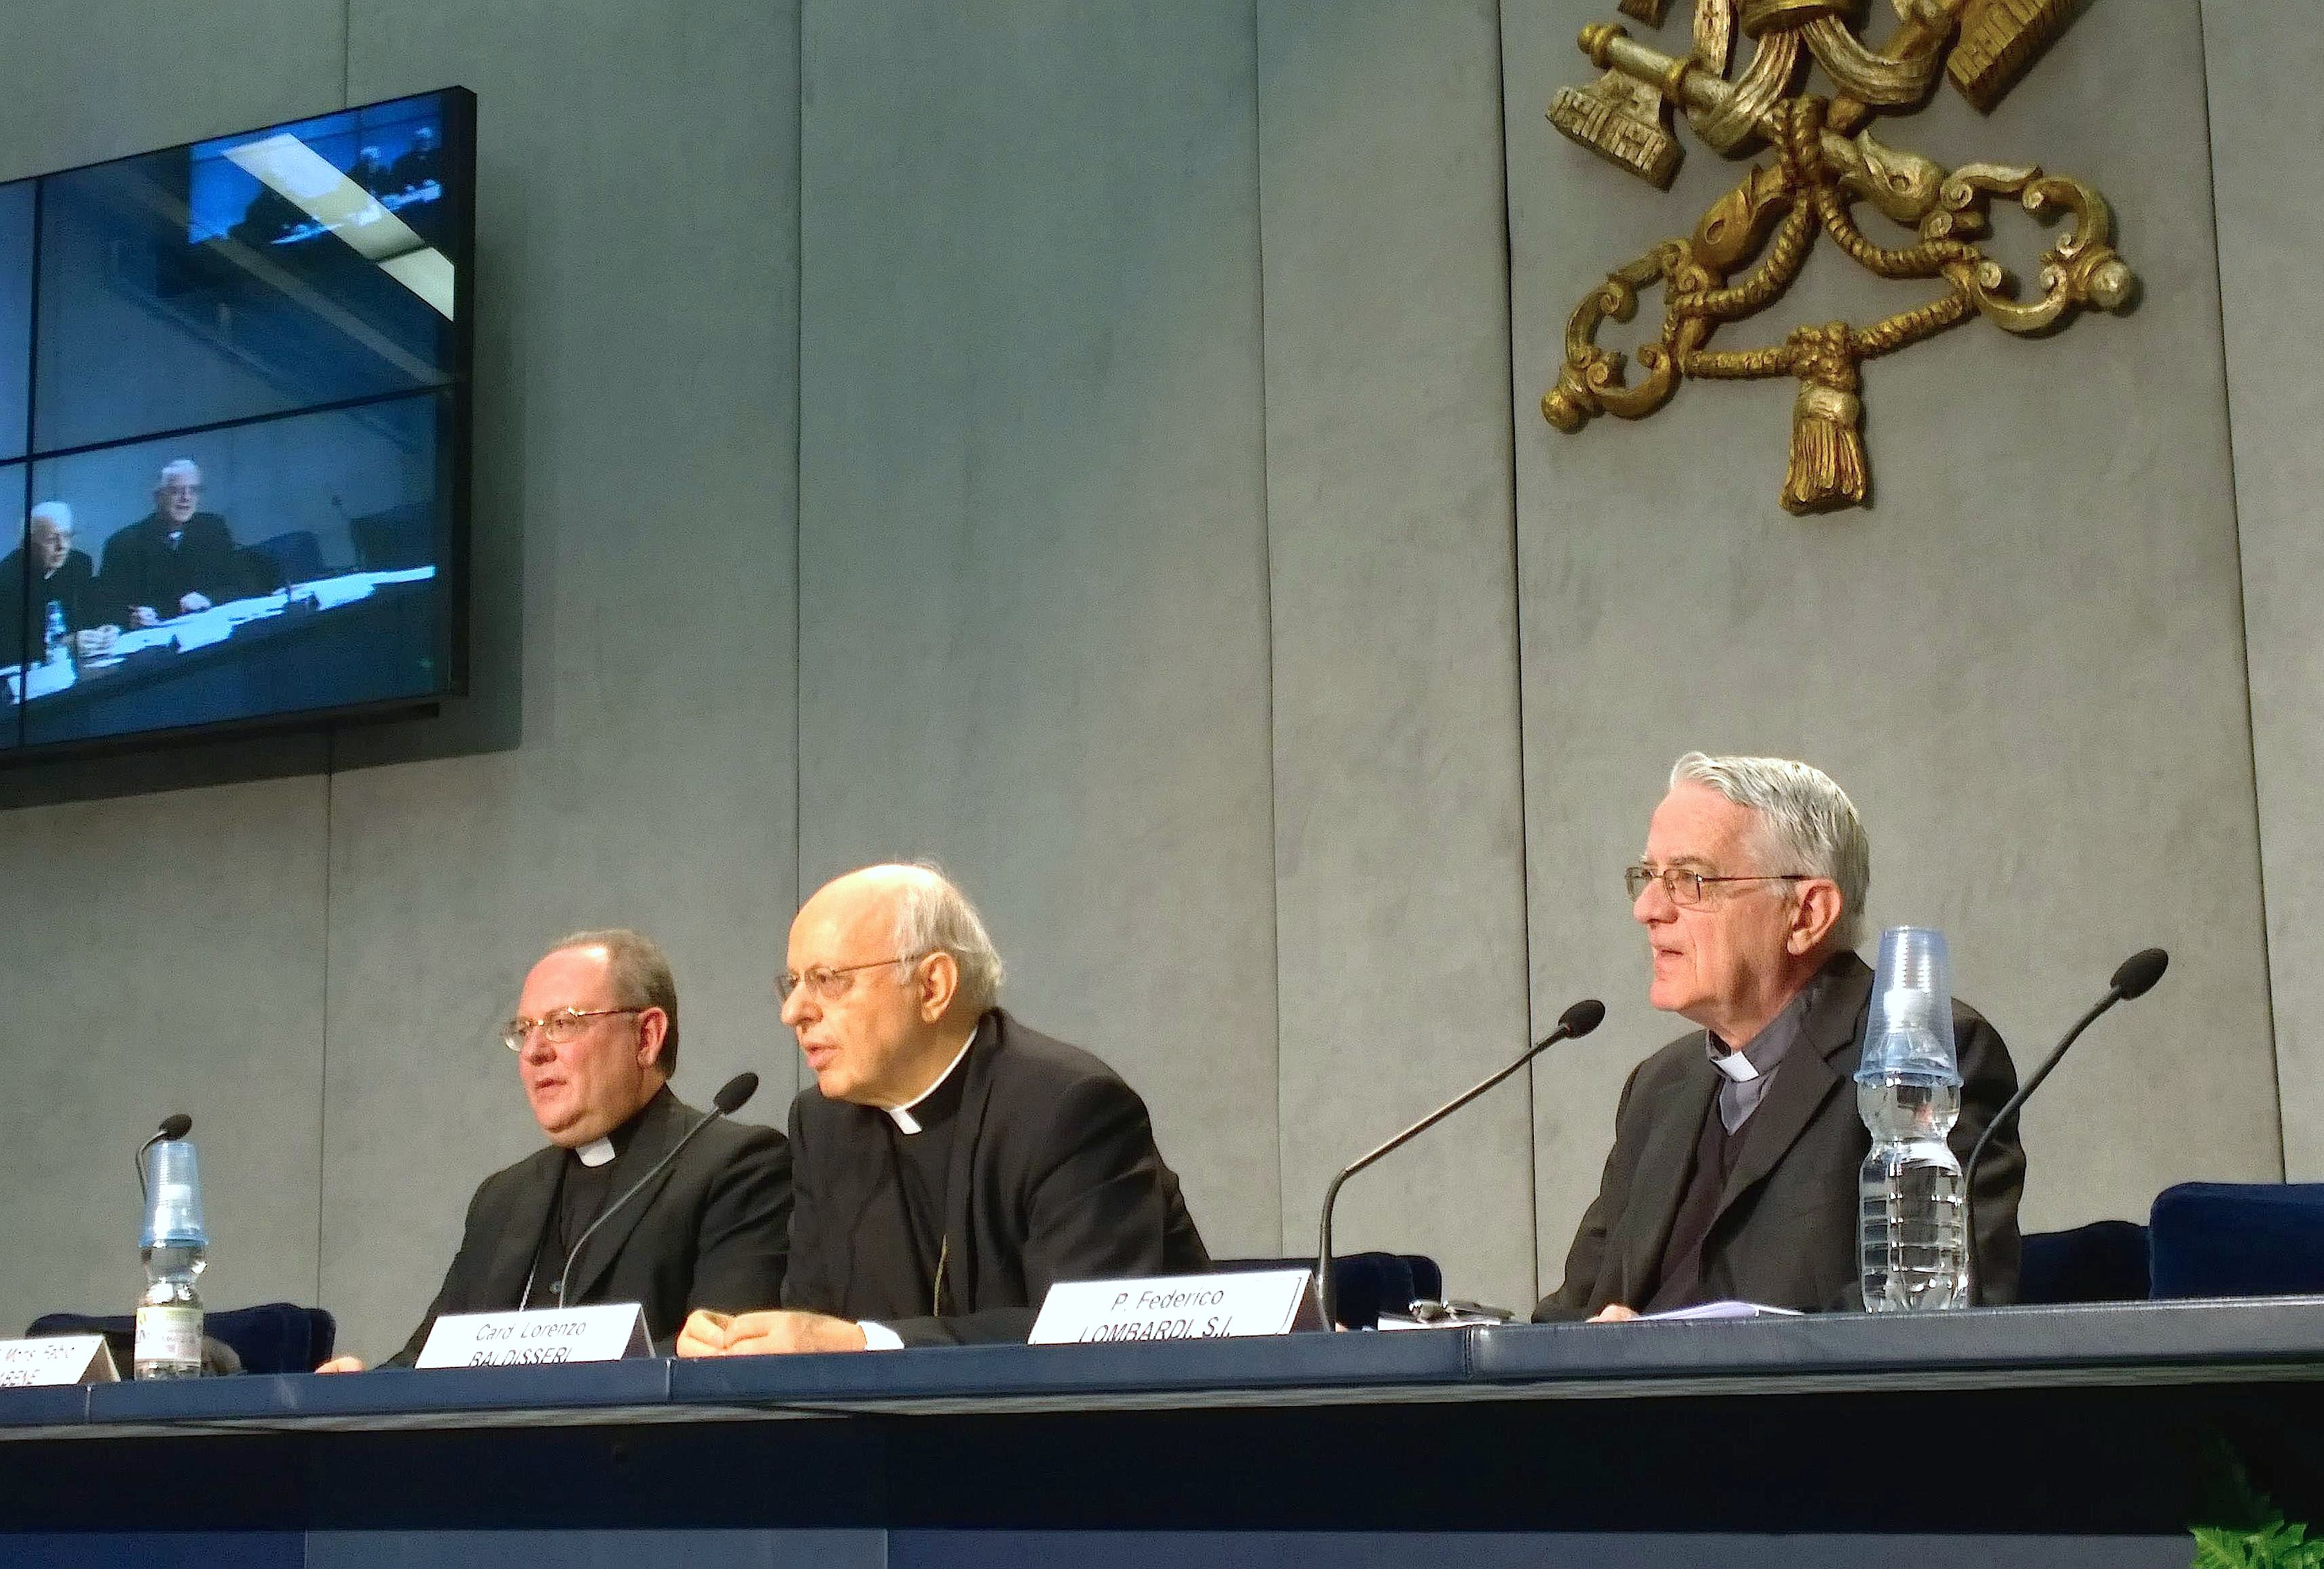 Cardinal Baldisseri during the presentation of the Synod of family - 2 October 2015